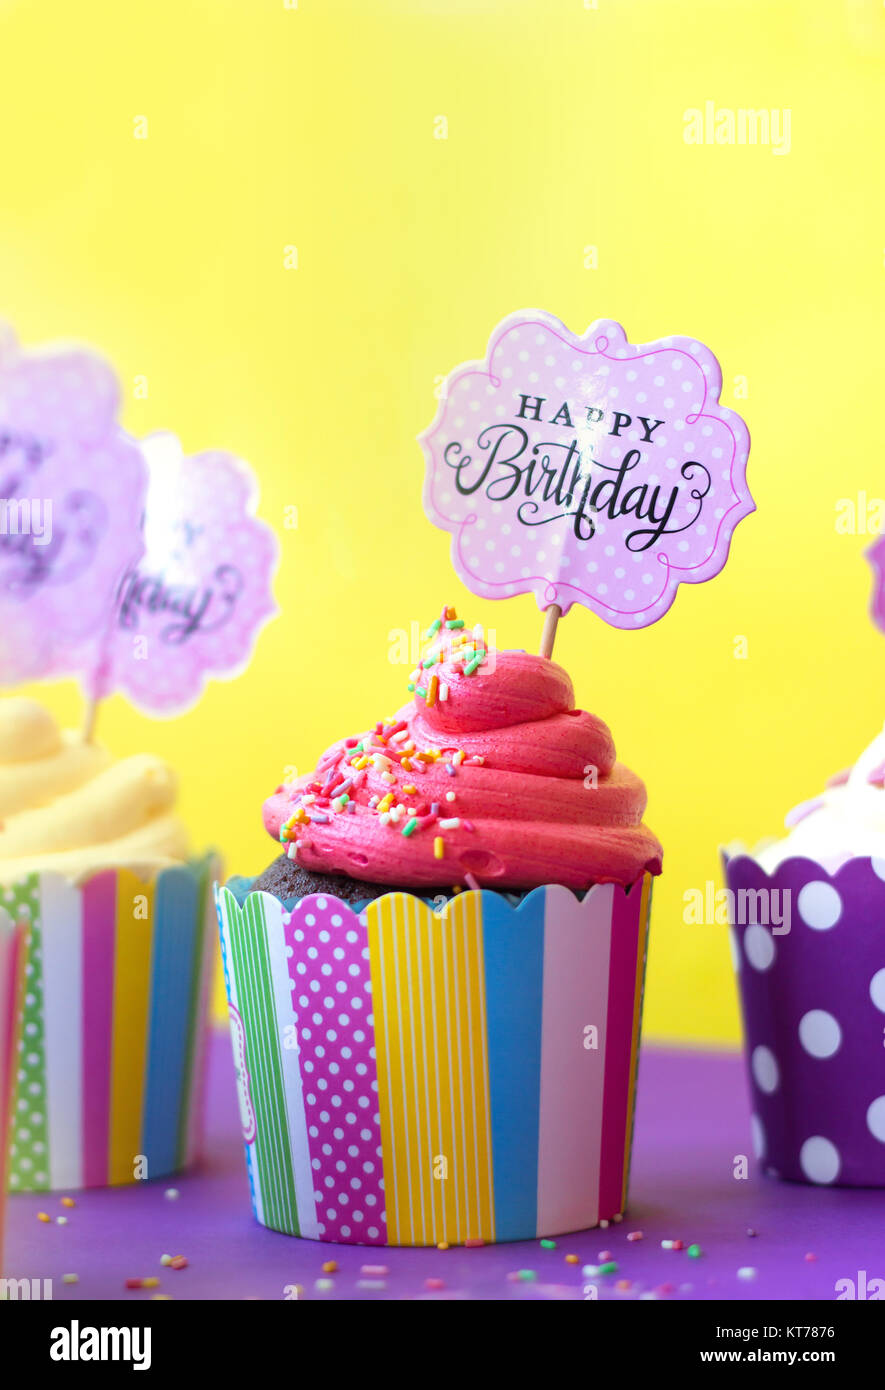 Tasty strawberry cupcakes in colorful paper baking cups, with Happy Birthday greeting card, on yellow background. - Stock Image